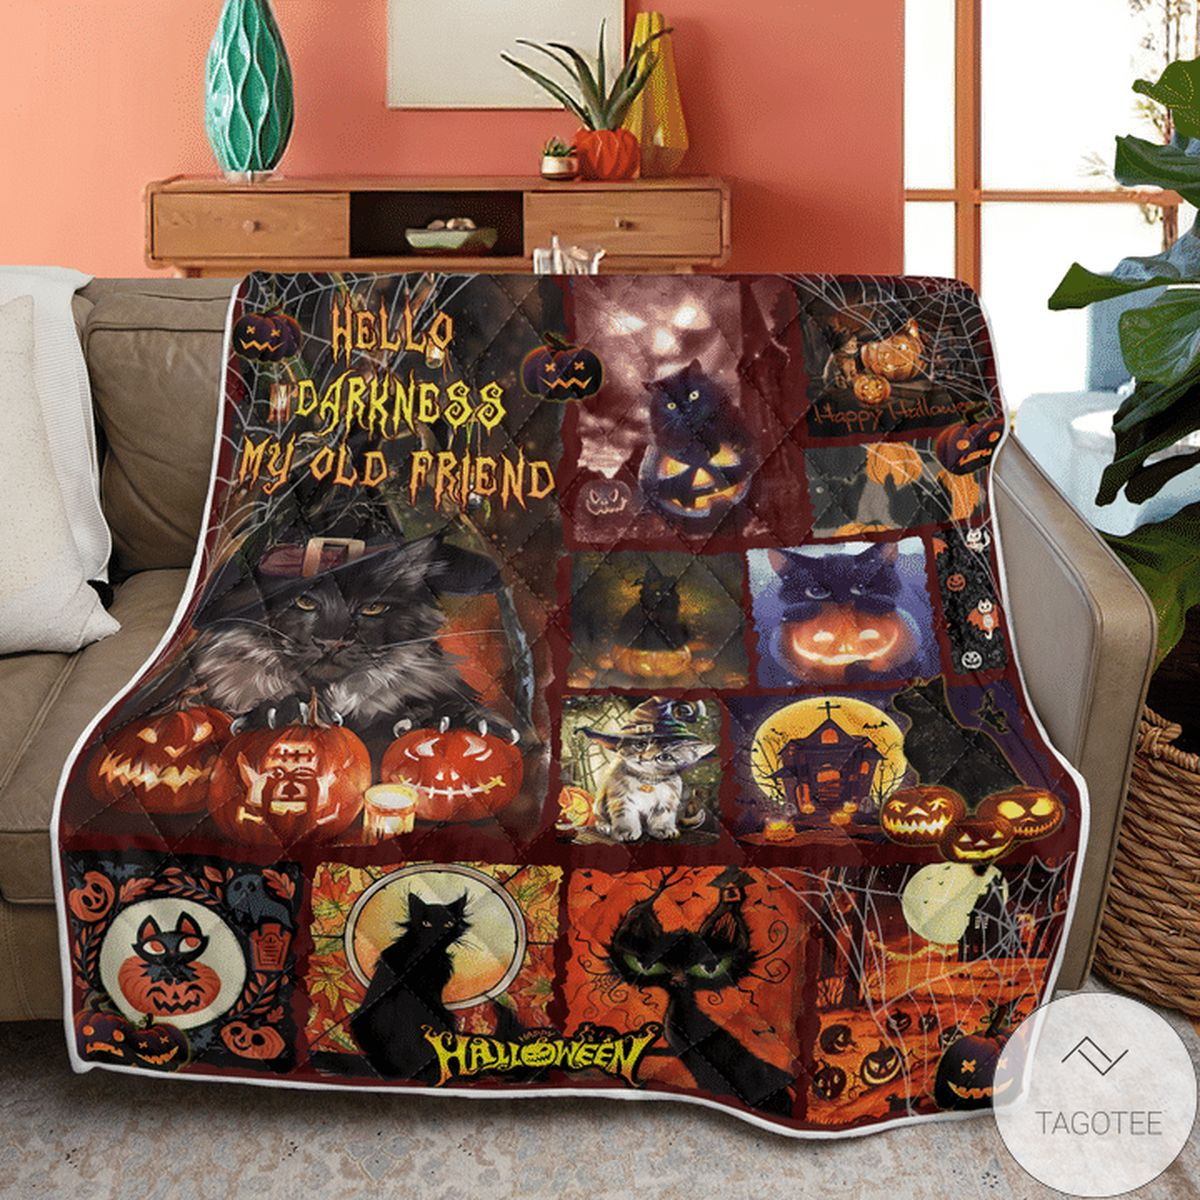 Where To Buy Black Cat Hello Darkness My Old Friend Halloween Quilt